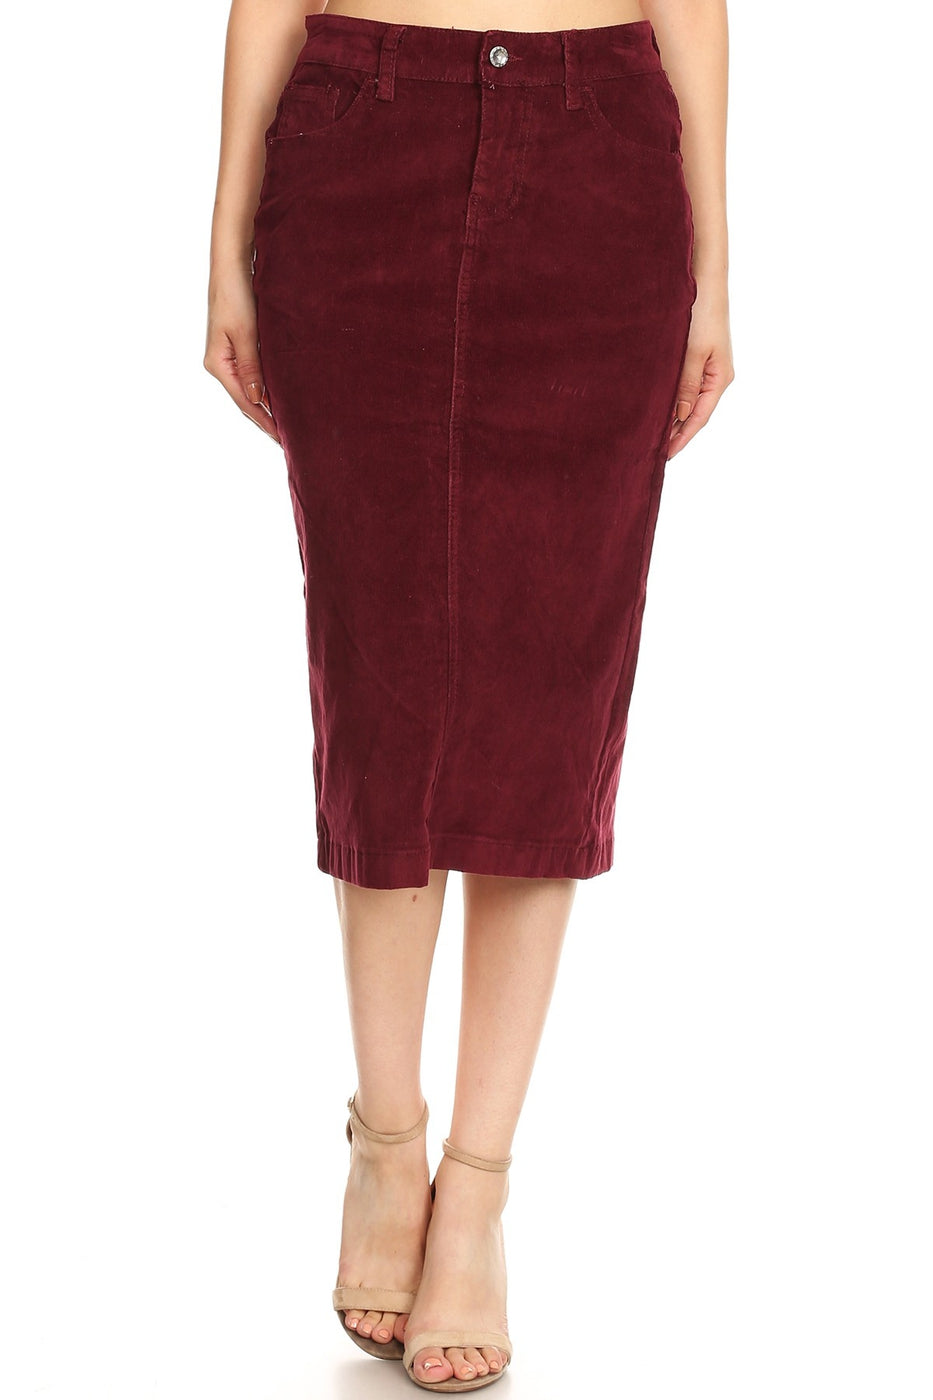 Gracey corduroy skirt in Burgundy